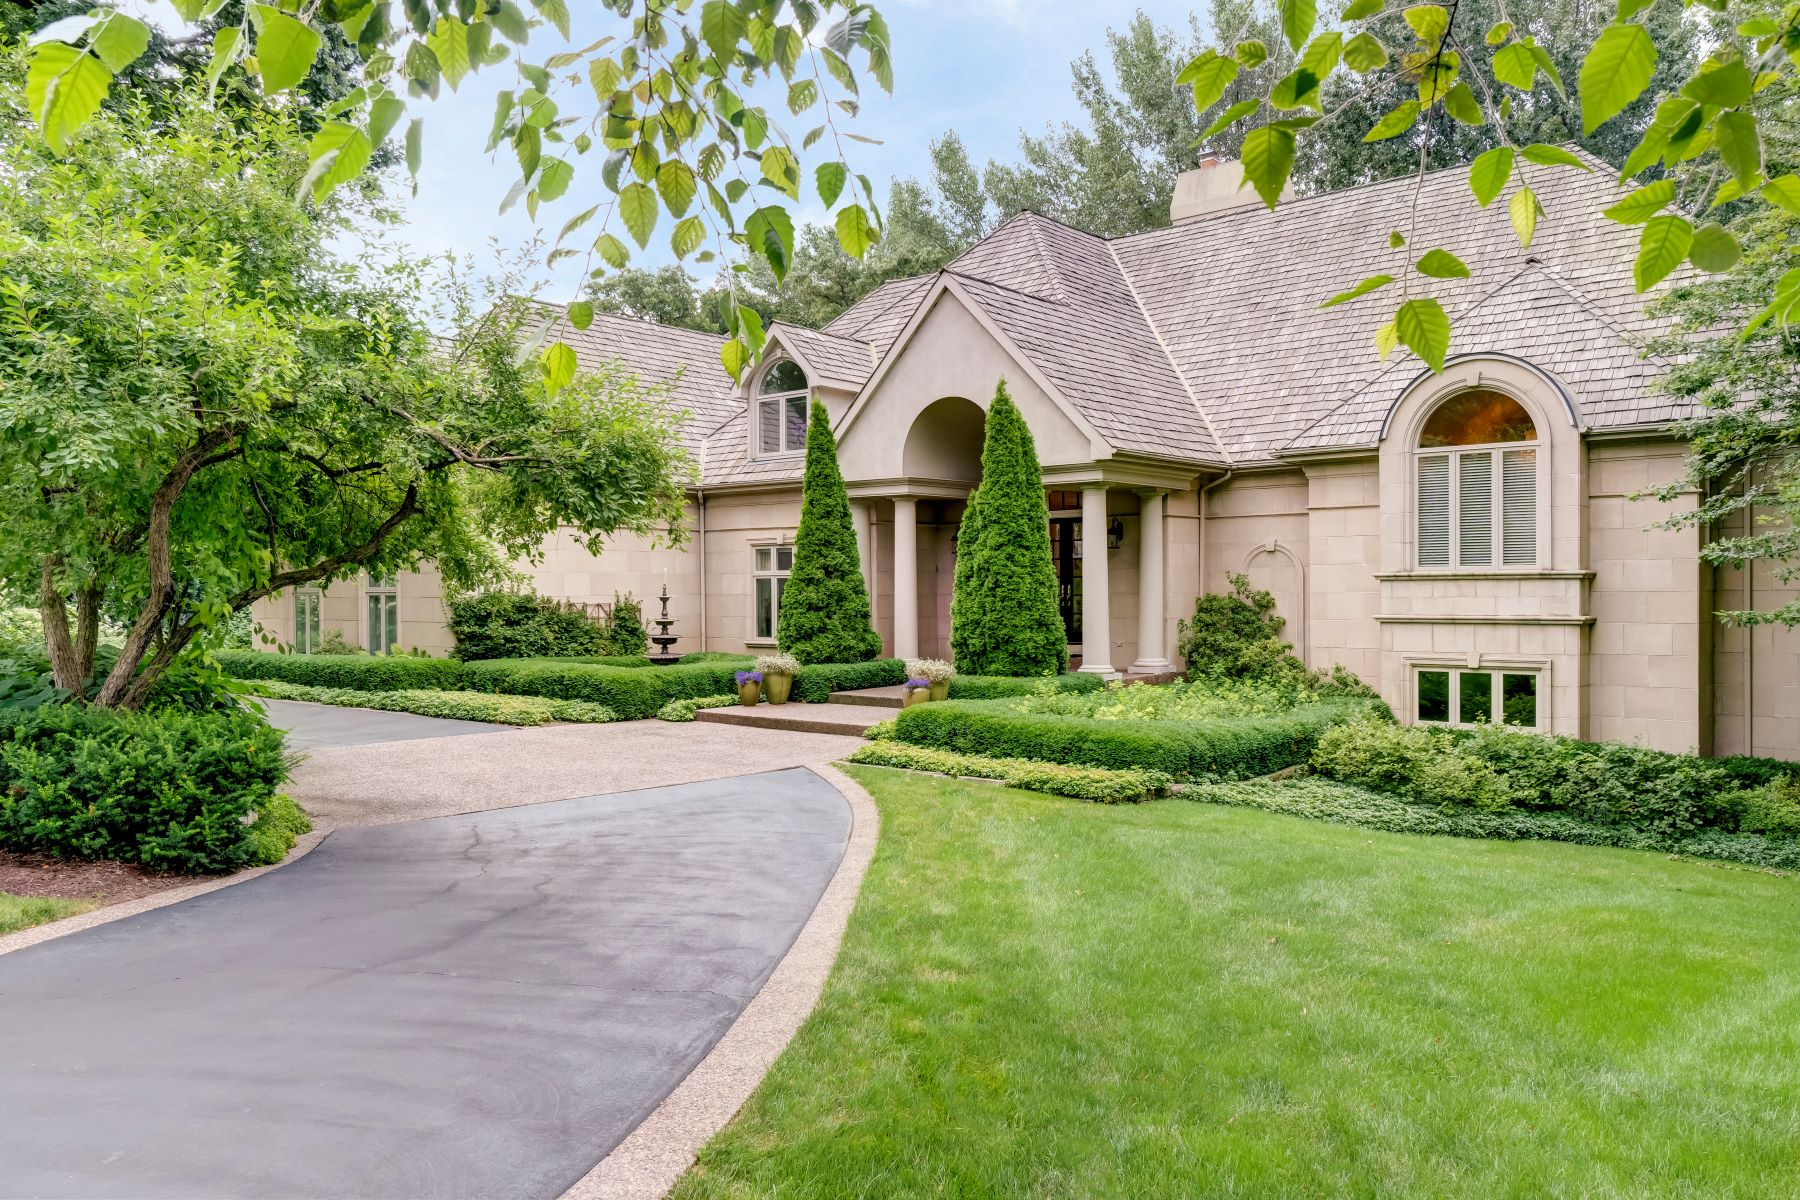 Single Family Homes for Sale at Beautiful North Barrington Home 162 N Wynstone Drive North Barrington, Illinois 60010 United States